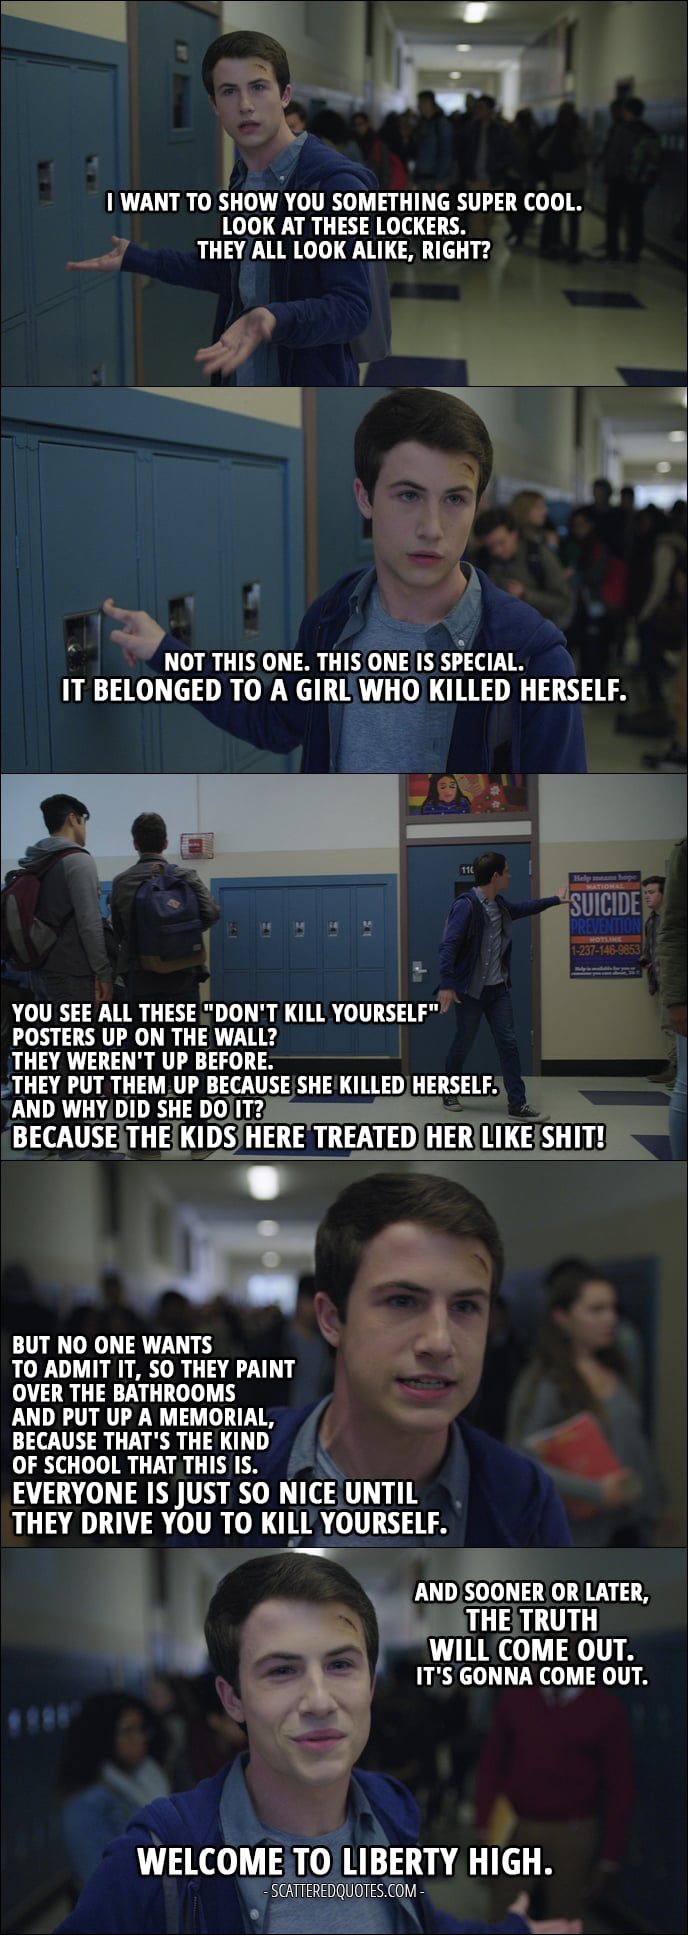 Killing Yourself Quotes Classy 12 Best 13 Reasons Why Quotes From 'tape 4 Side A' 1X07